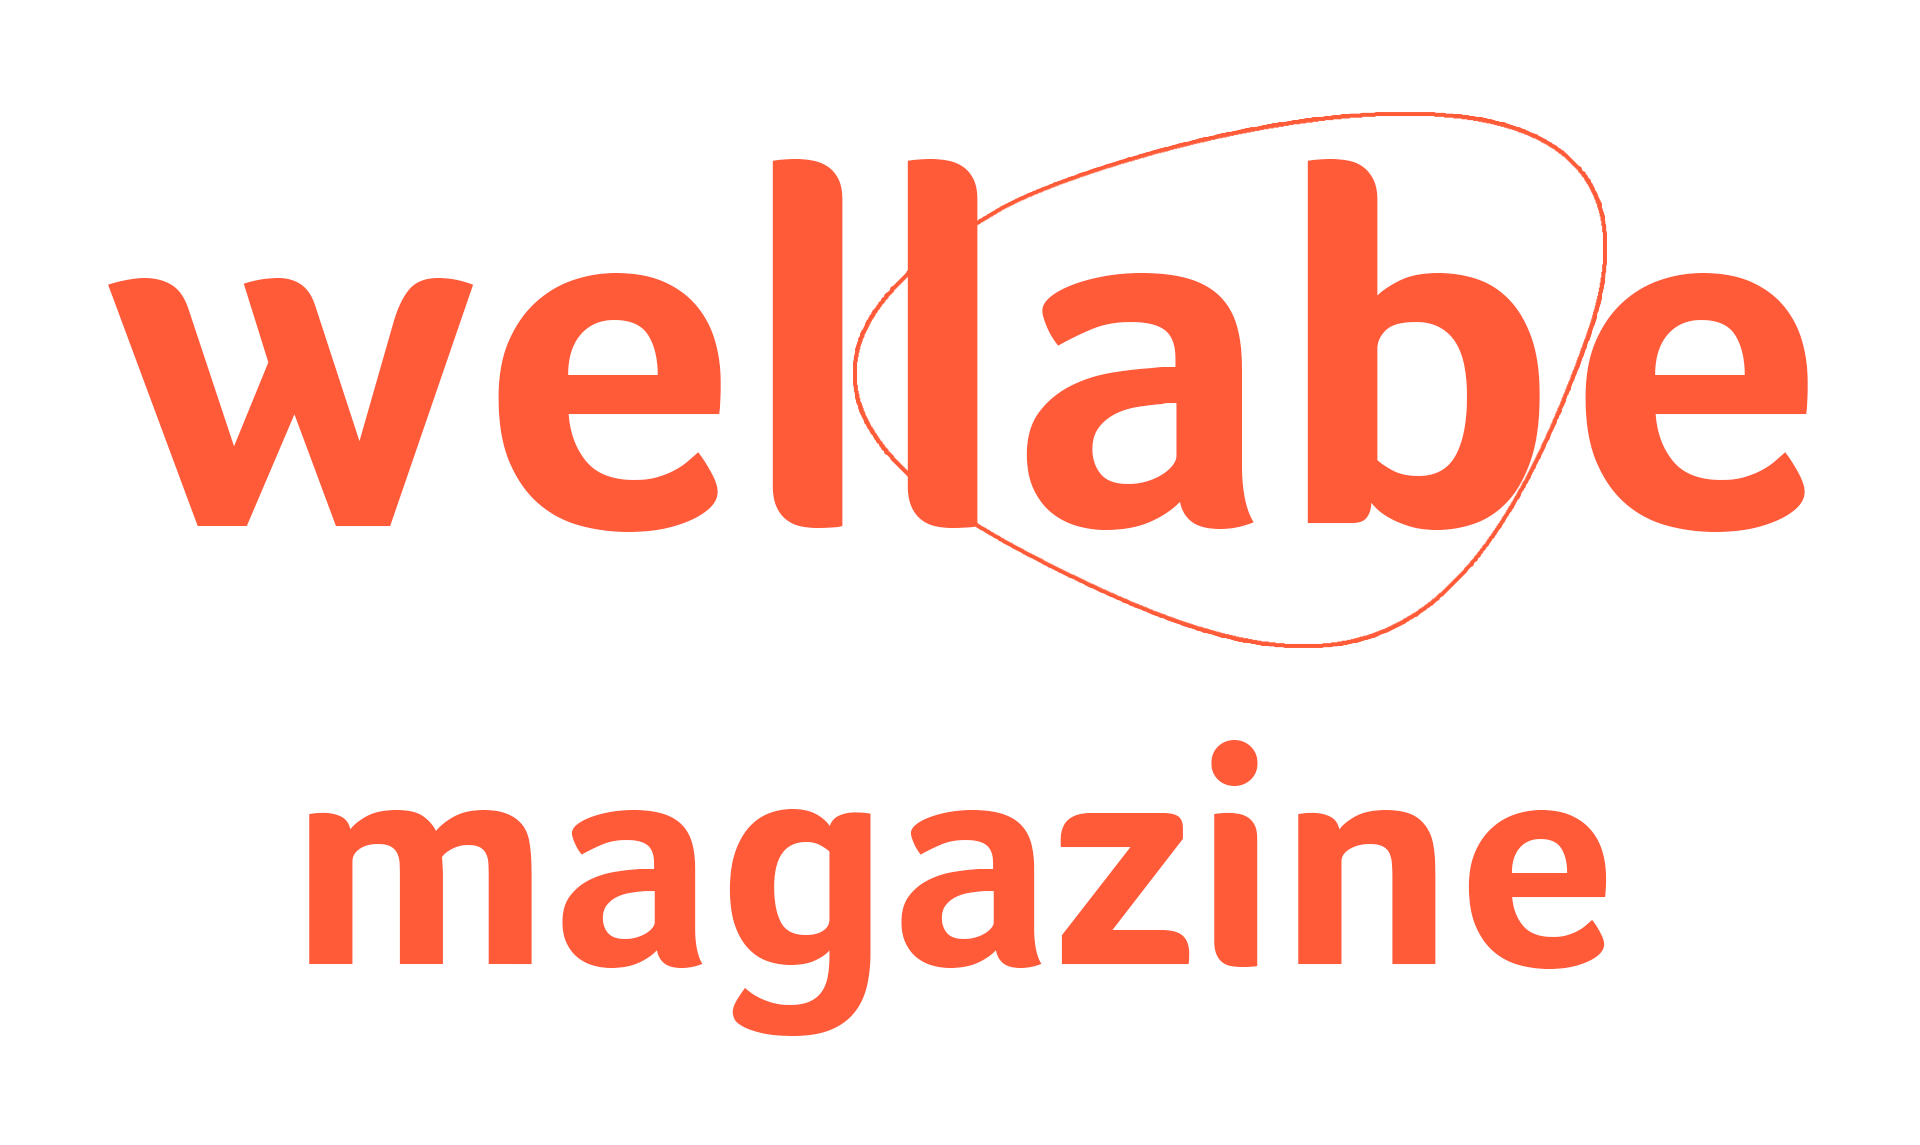 Wellabe Magazine